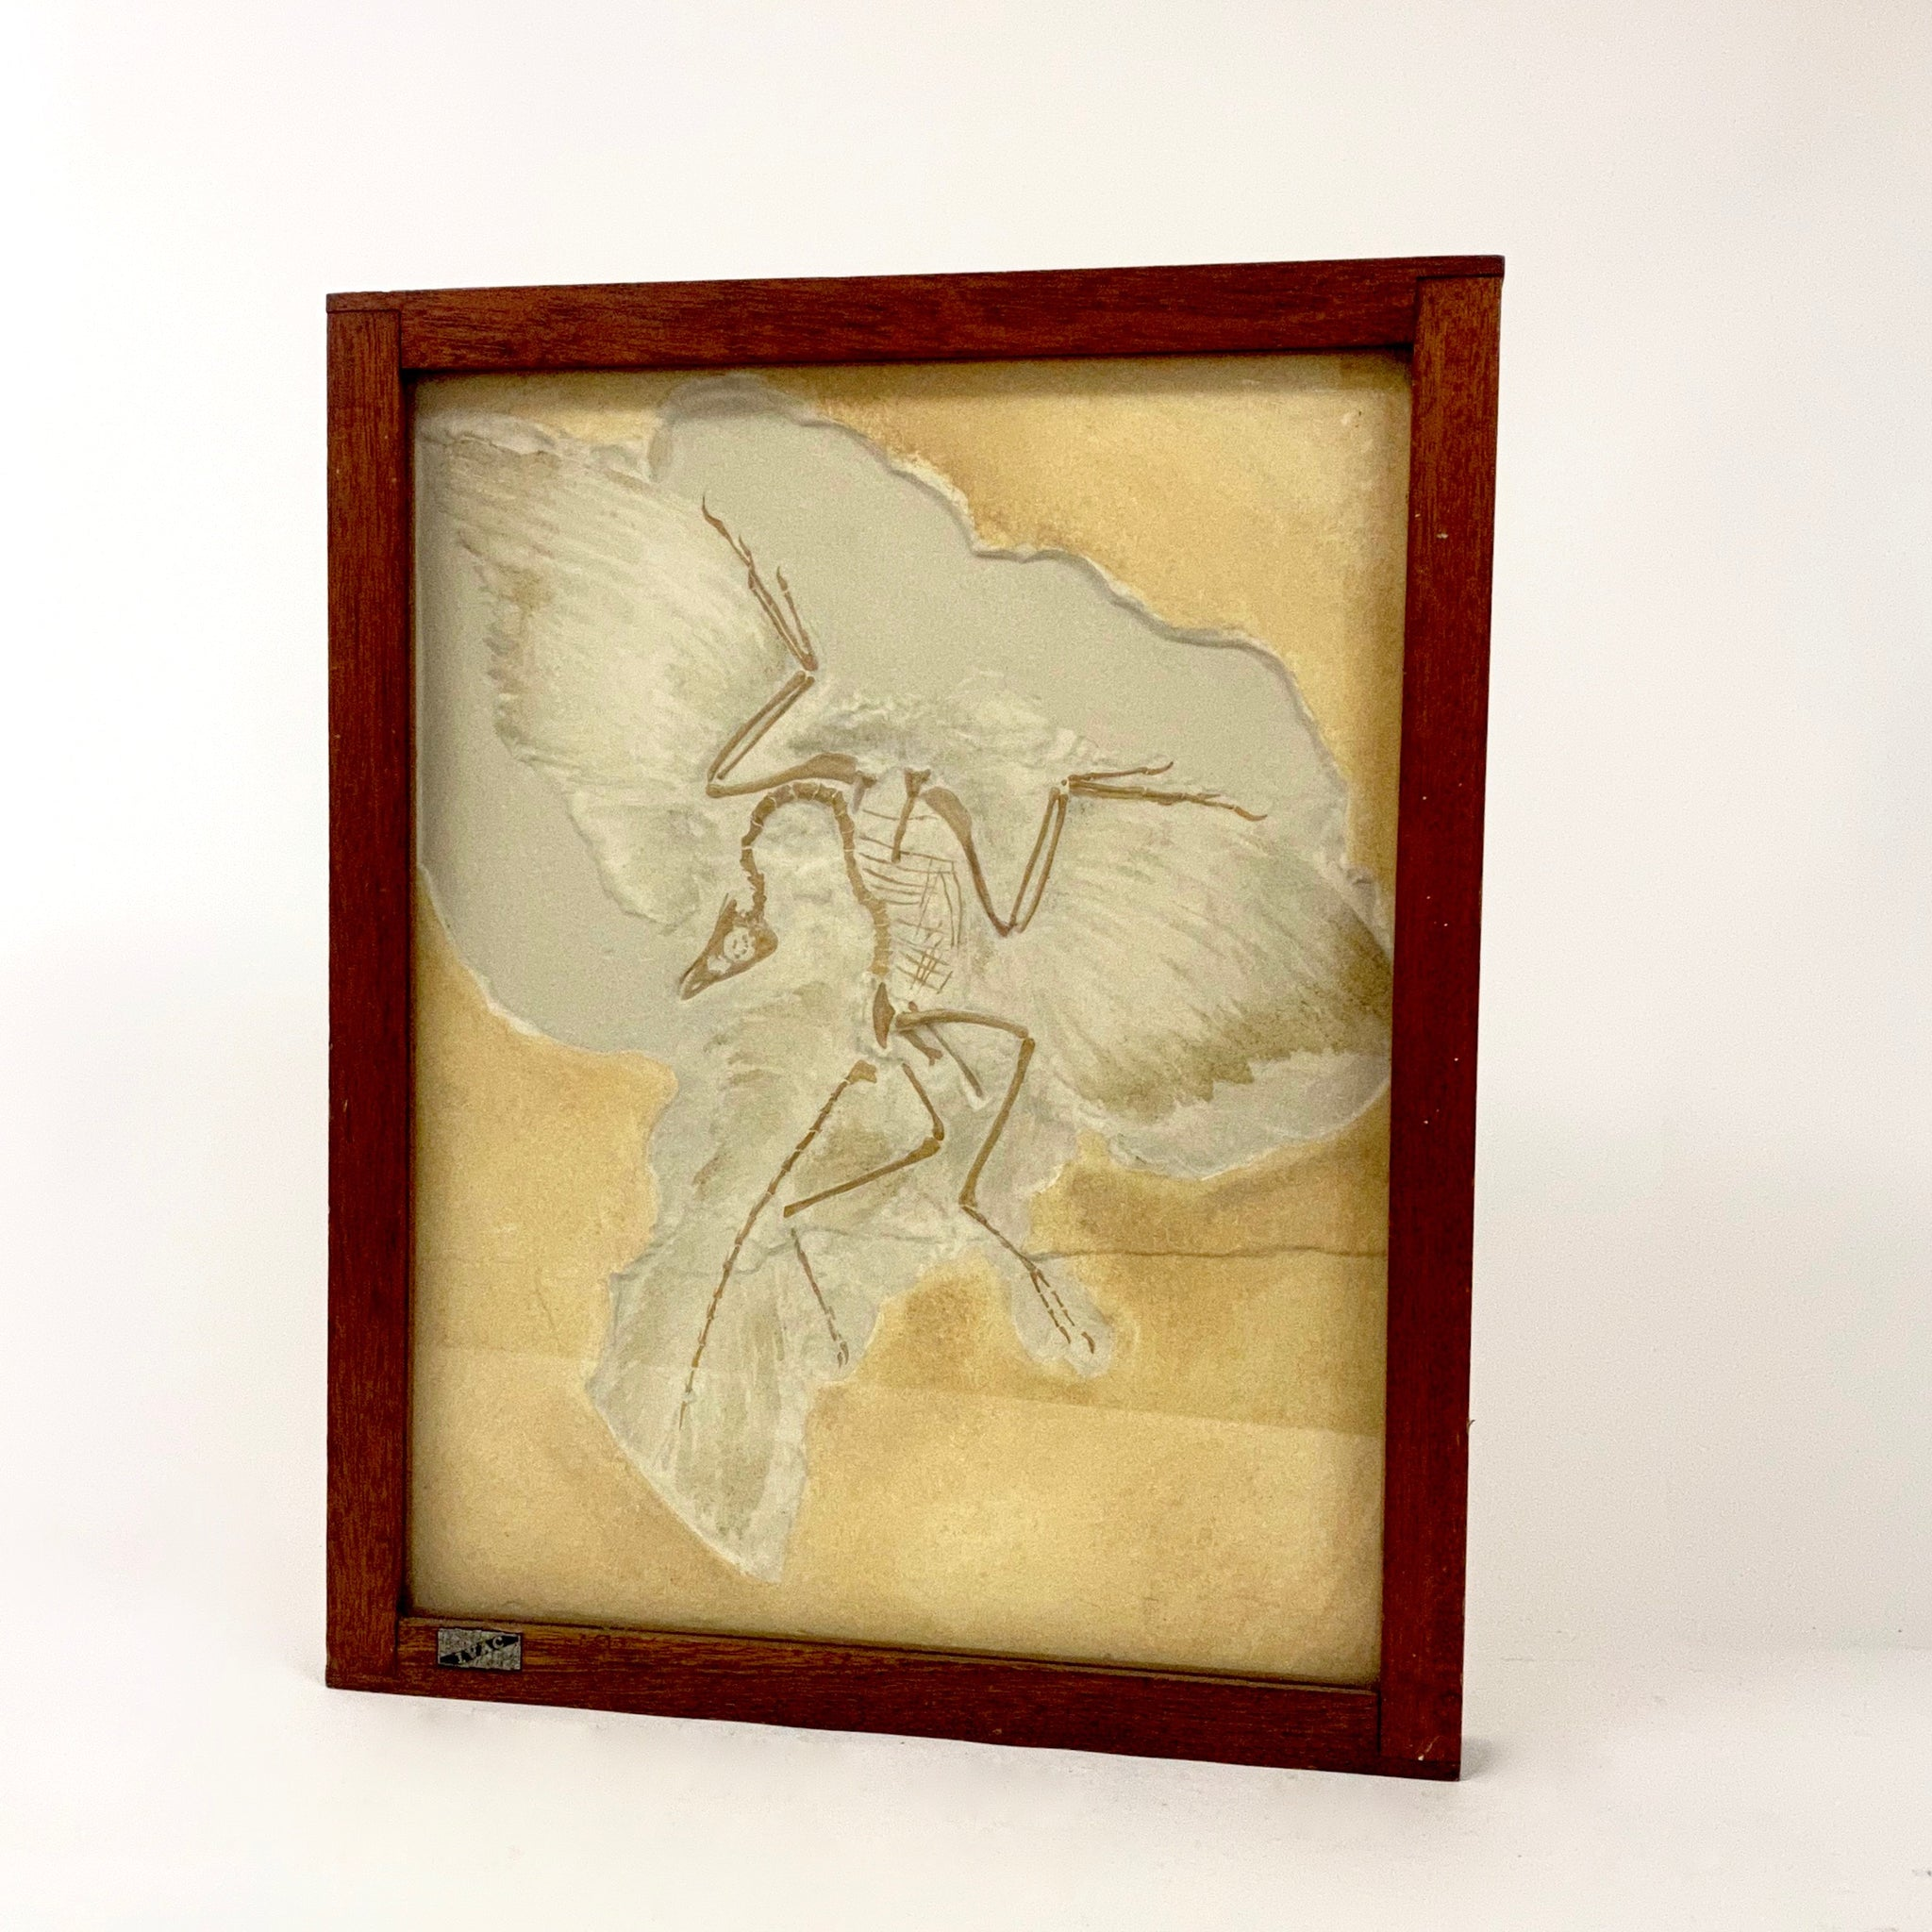 Framed cast of the famous Archaeopteryx fossil circa 1960 .